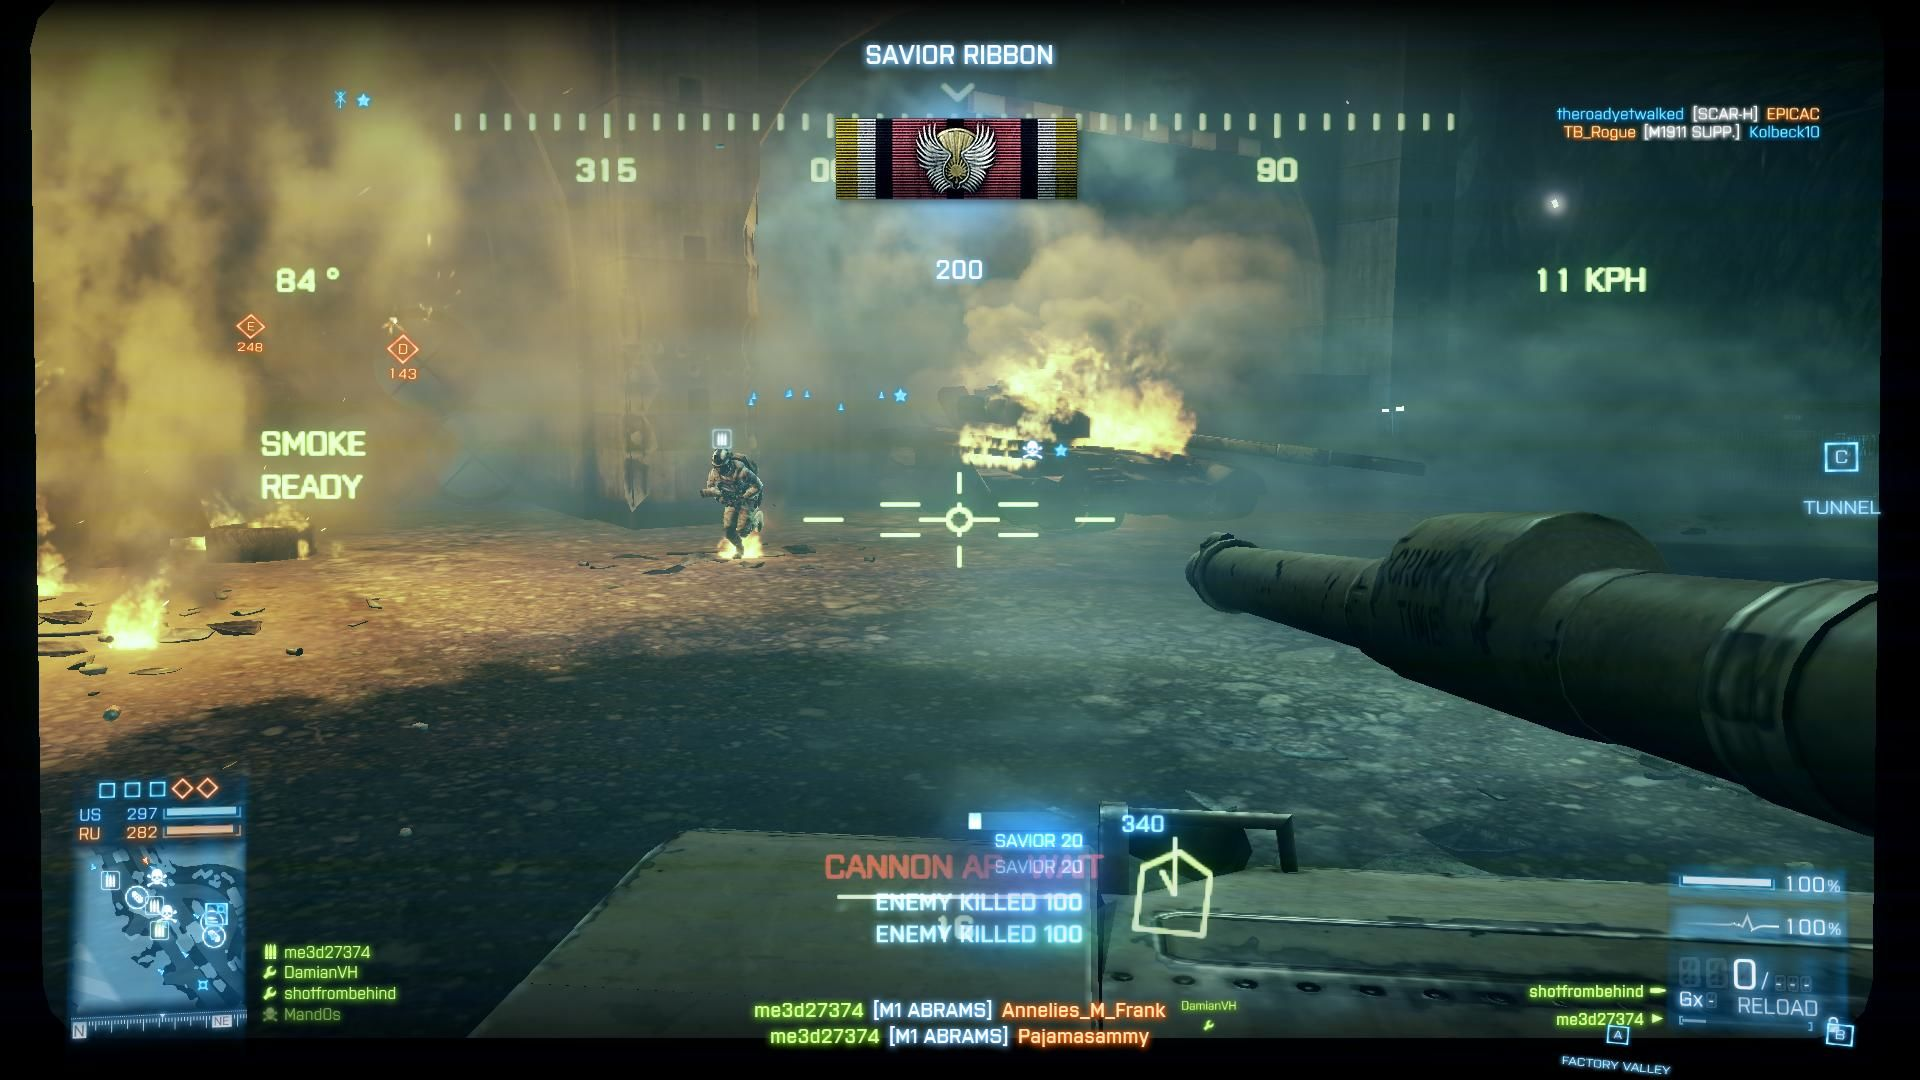 Battlefield 3 Windows Damavand Peak - Destroyed enemy tank saving a teammate gaining a Savior Ribbon